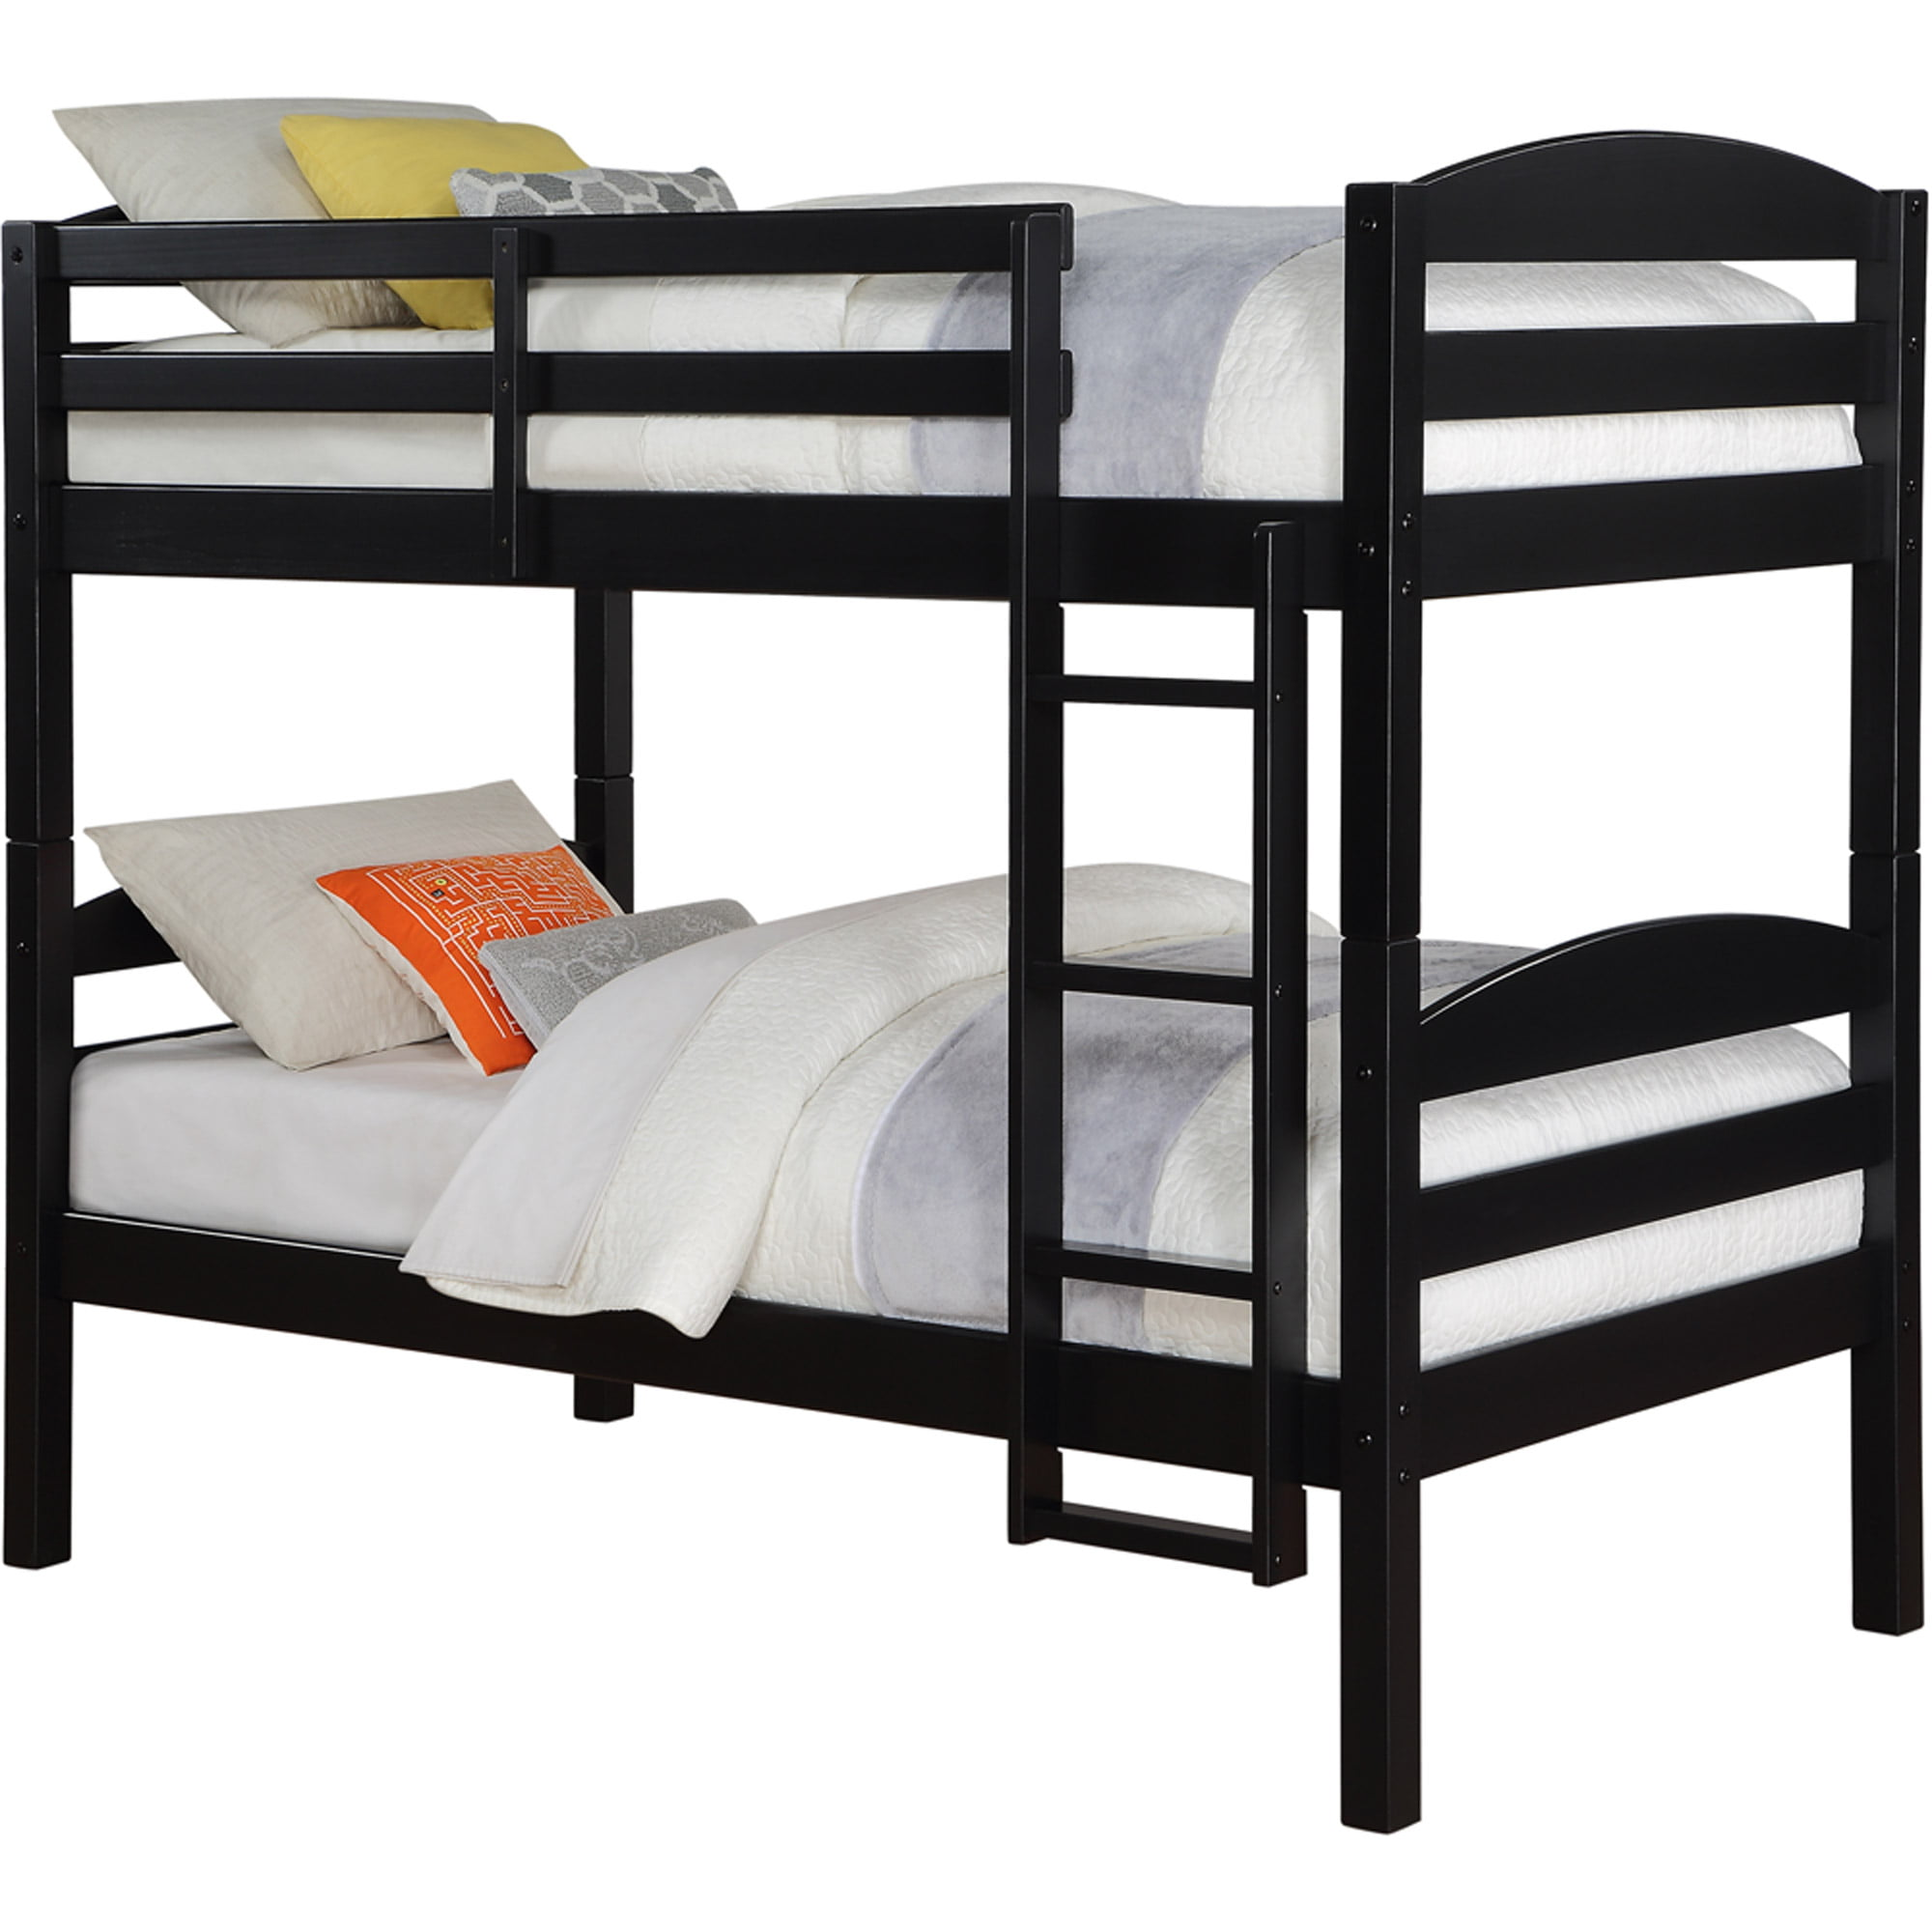 Bed Pictures better homes and gardens leighton twin over twin wood bunk bed